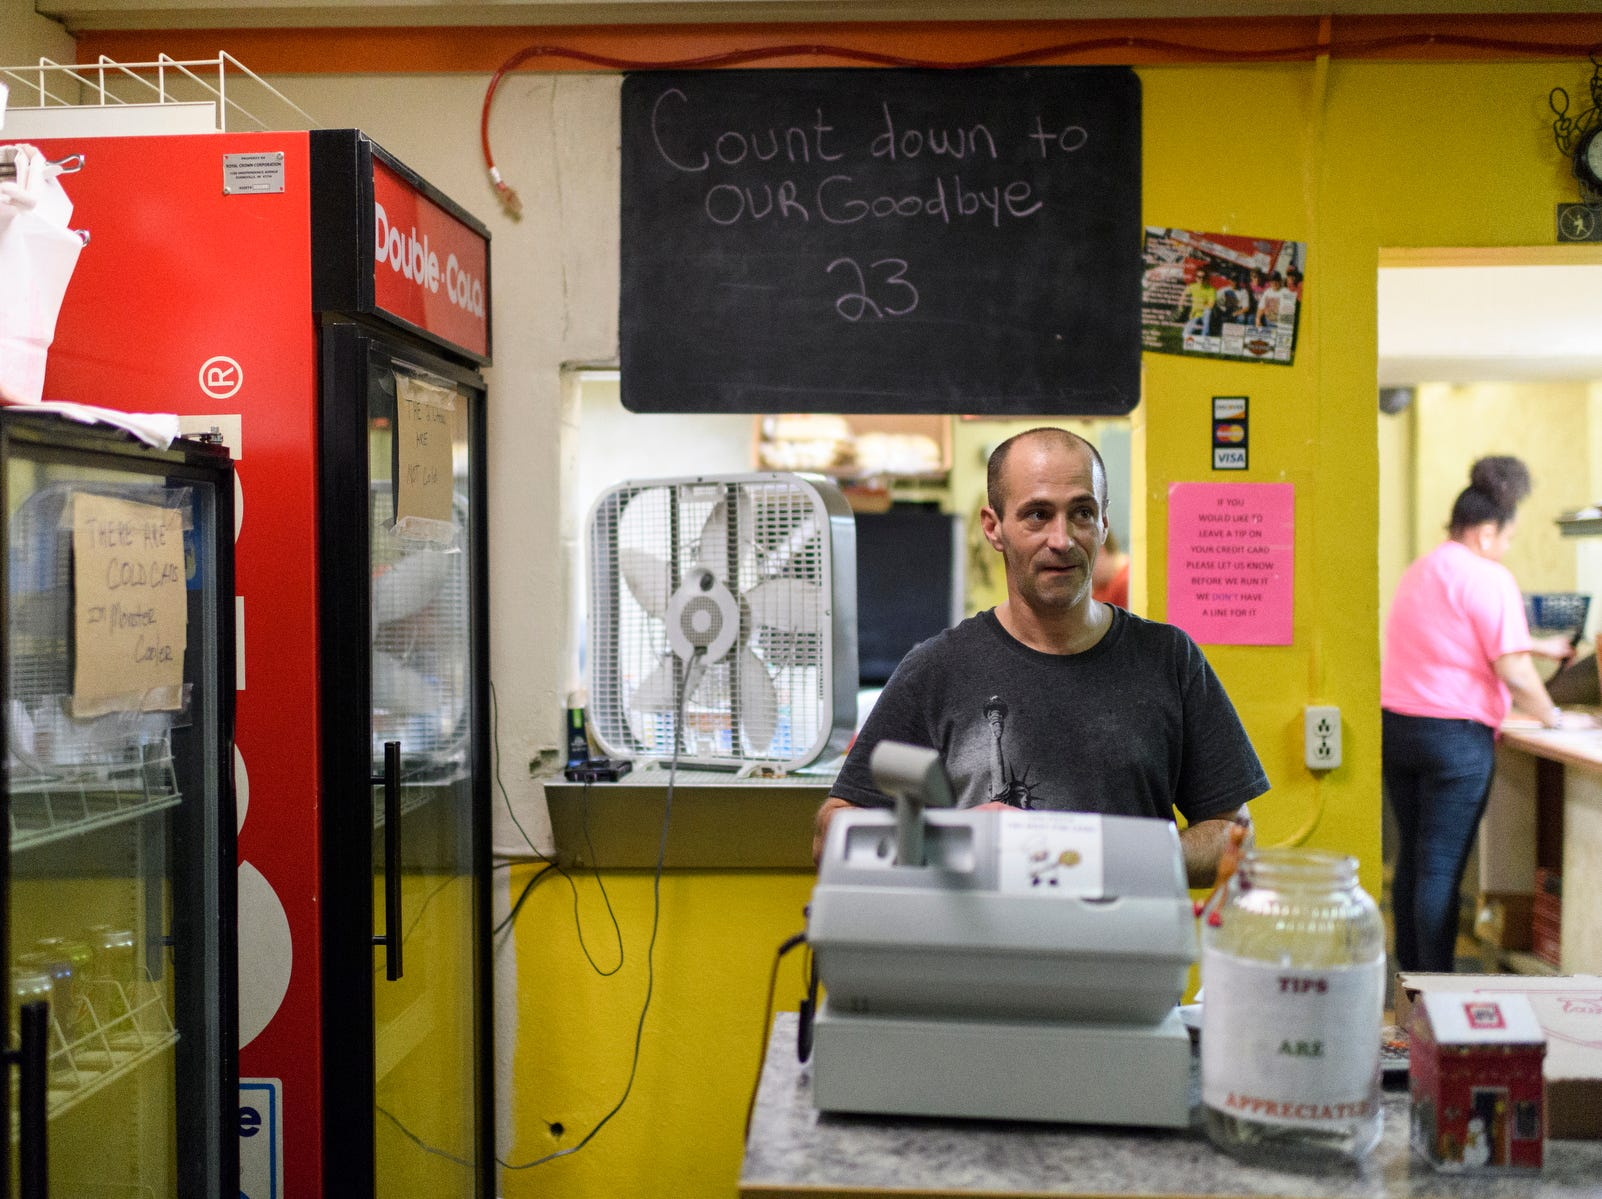 Ed Roach works the cash register as customers pick up carry out orders at Stan's Una Pizza, located on Evansville's west side, Friday night, Dec. 7, 2018. His parents are retiring from the pizza business after owning Stan's for over 17 years.